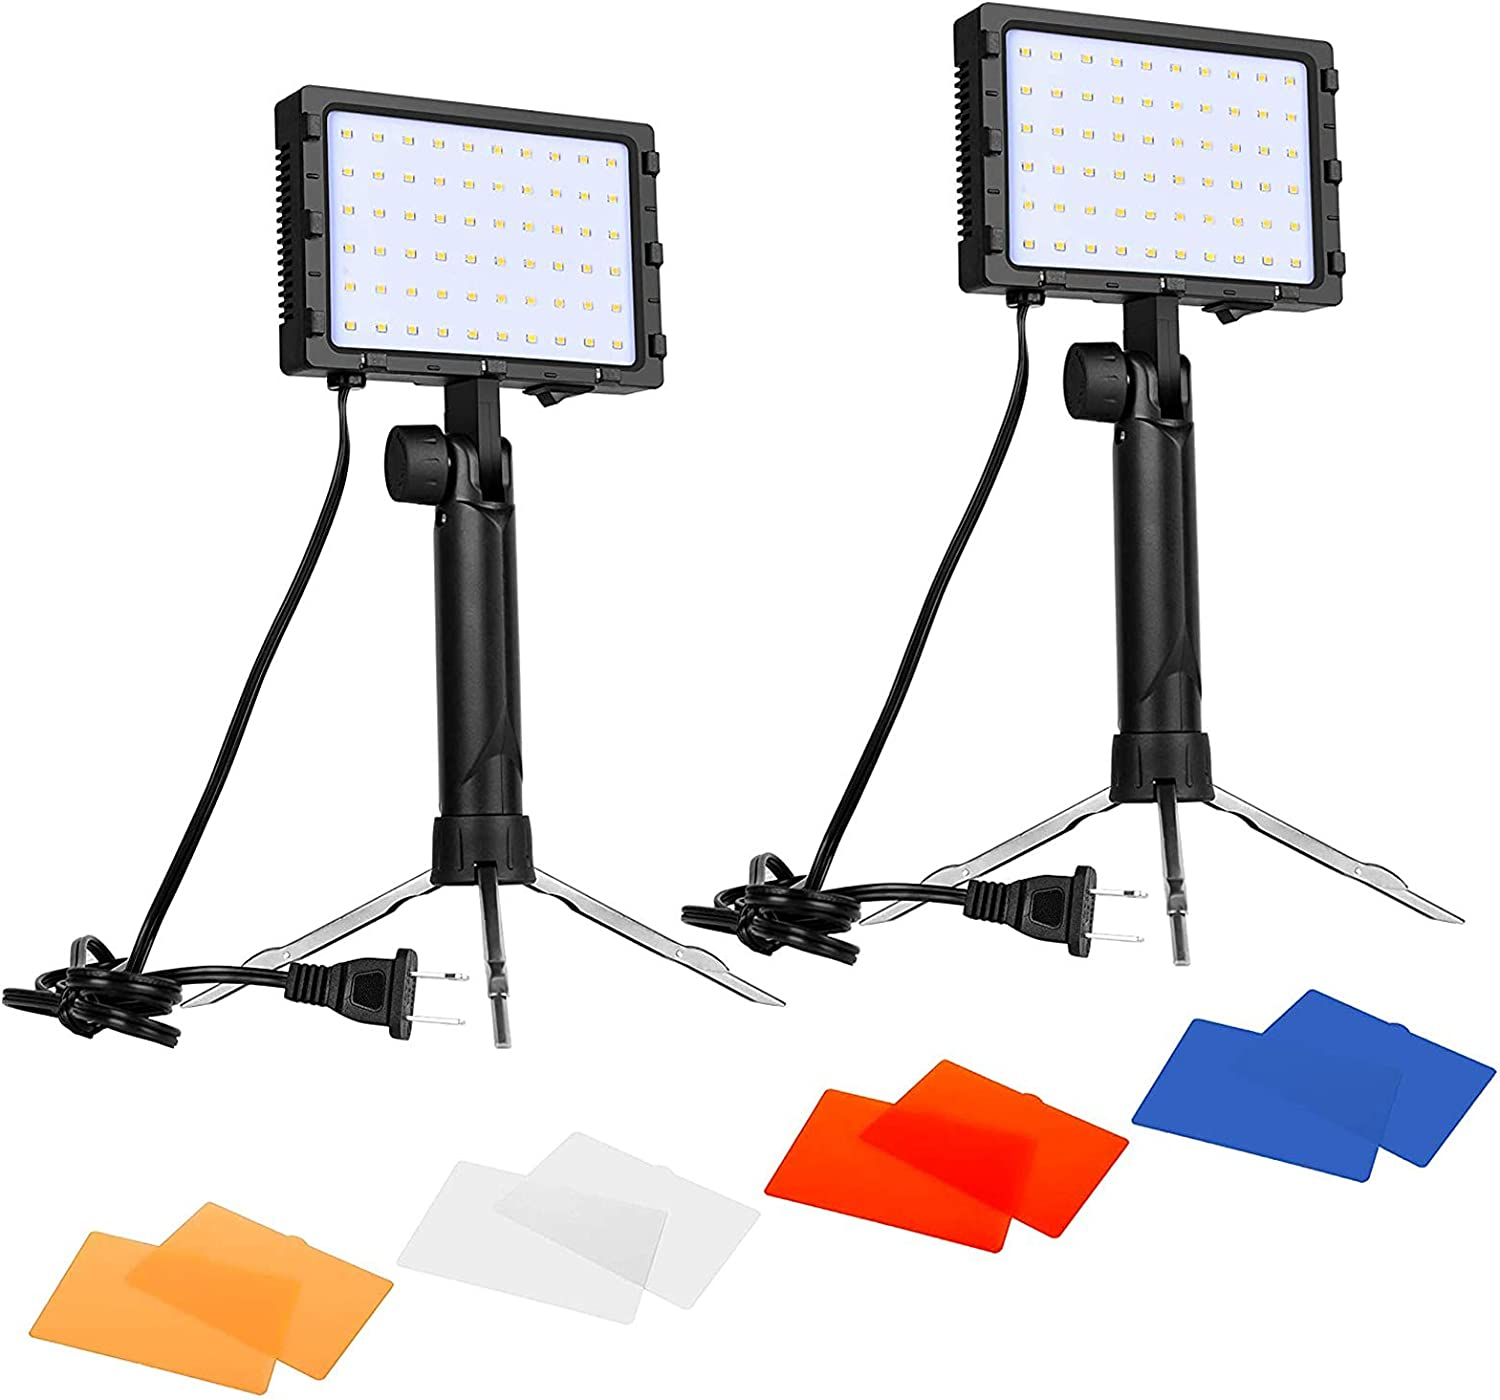 Emart 60 LED Continuous Portable Photography Lighting Kit for Table Top Photo Video Studio Light Lamp with Color Filters - 2 Packs : Camera & Photo